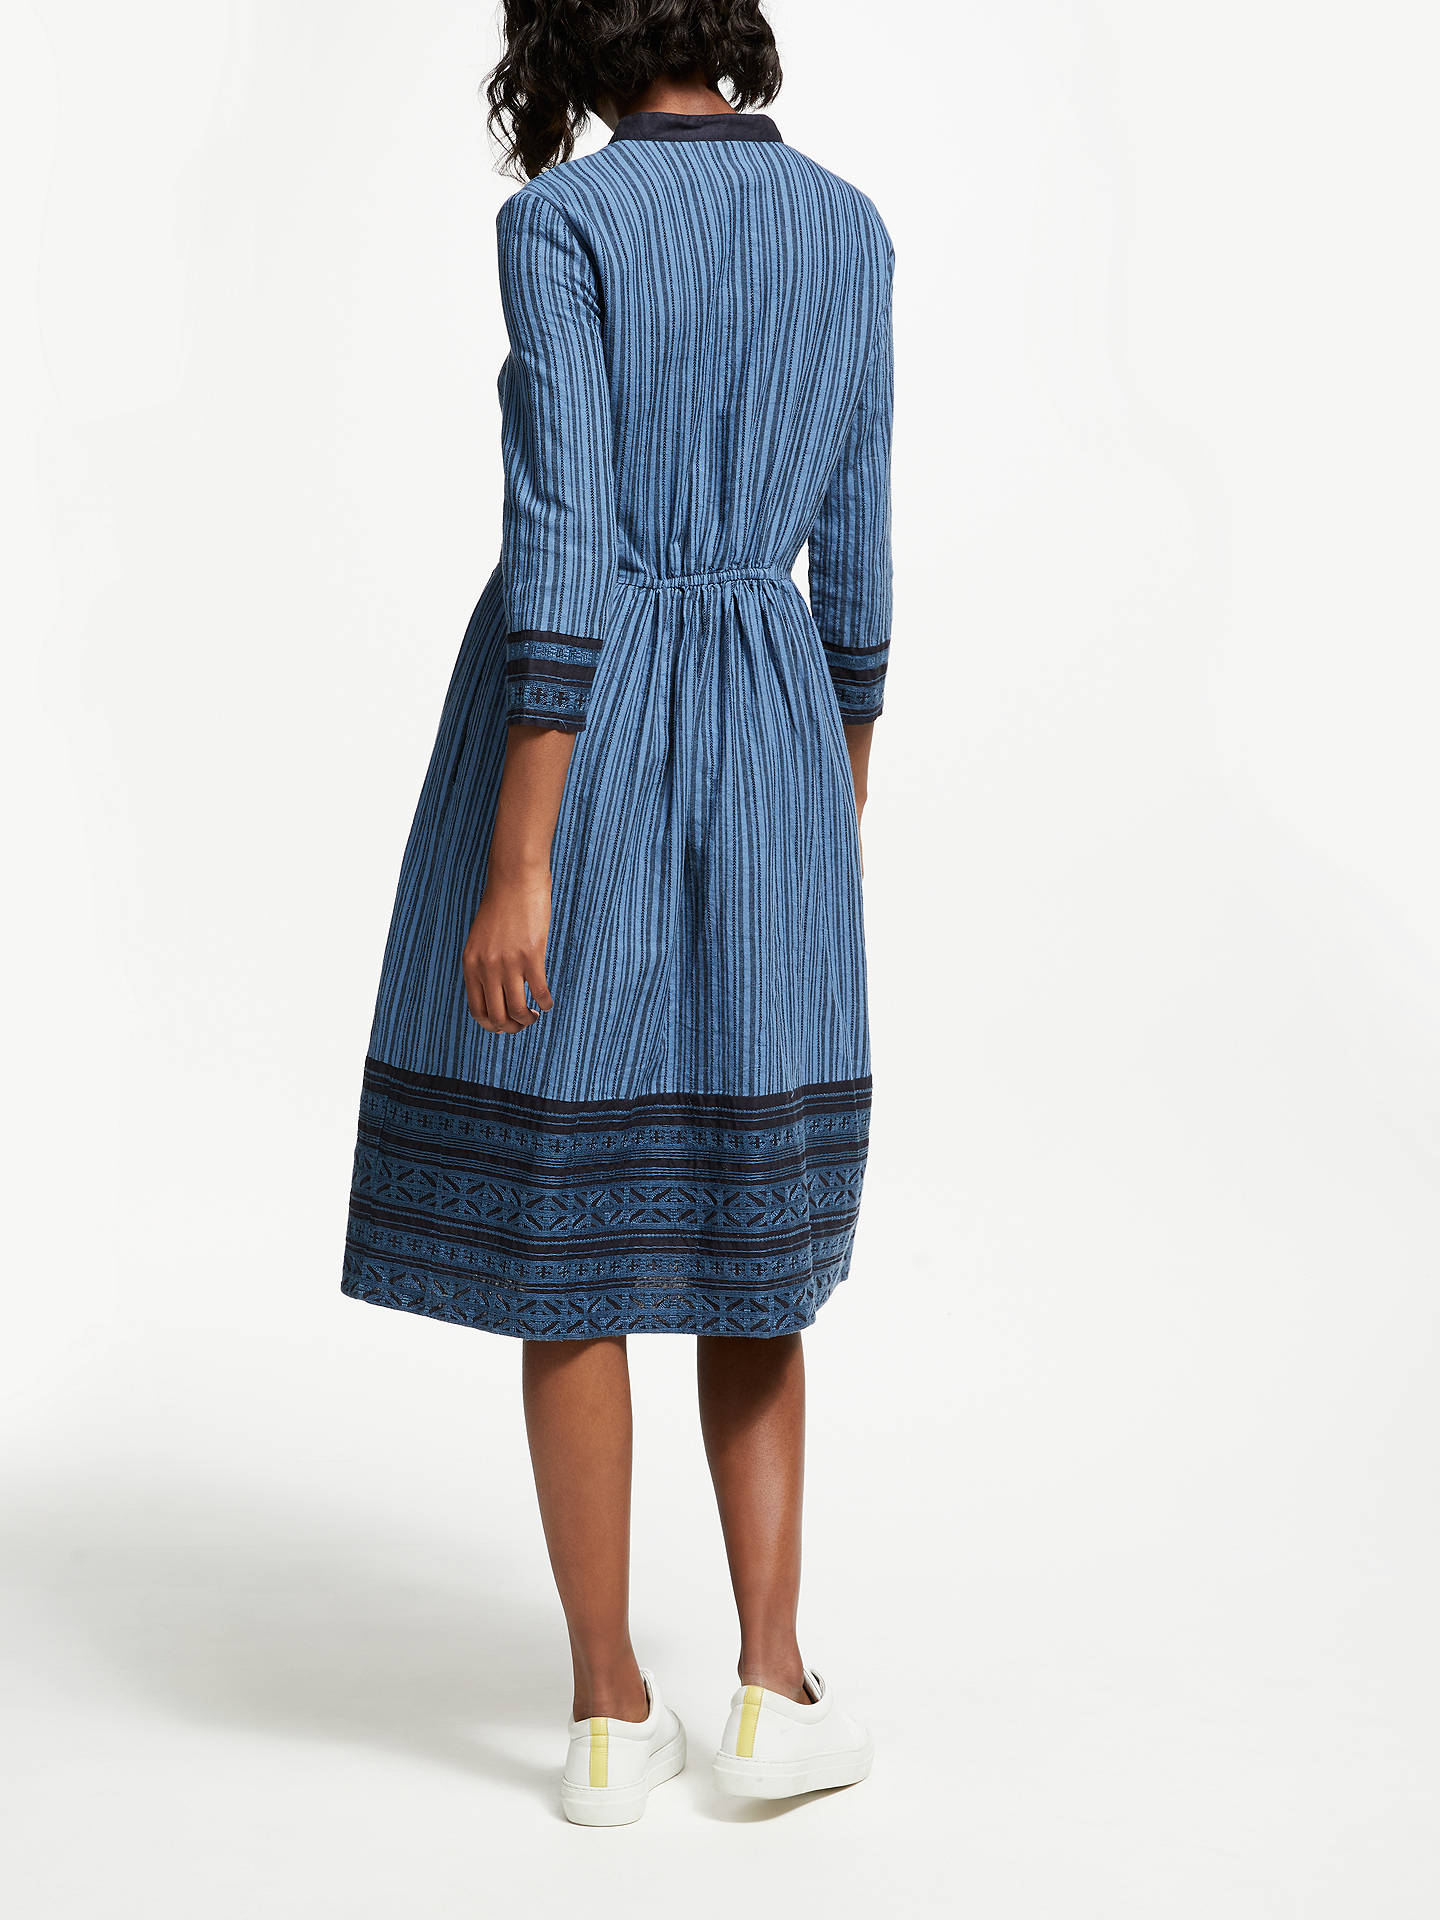 BuyThought Sasha Dress, Blue, 8 Online at johnlewis.com